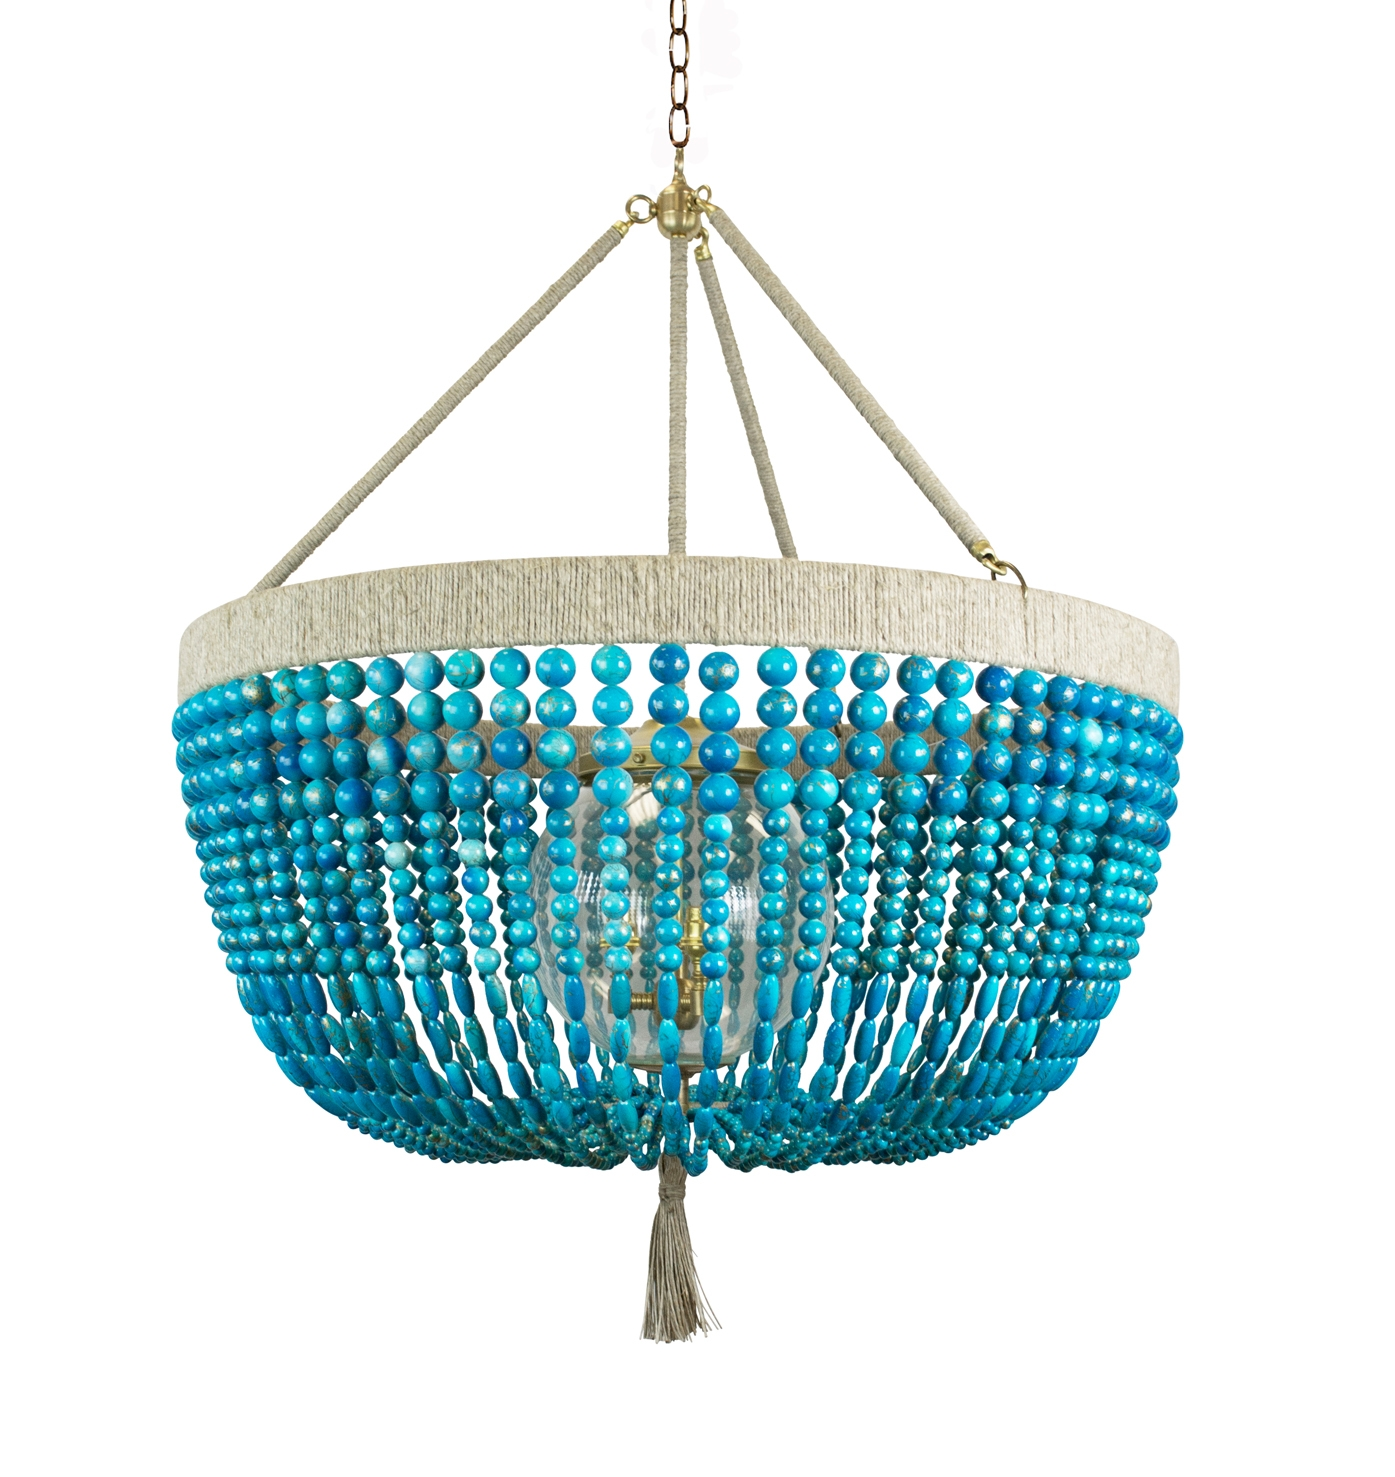 Malibu 30 Turquoise Swirl Outdoor Chandelier Ro Sham Beaux Regarding Turquoise Chandelier Lights (View 7 of 25)